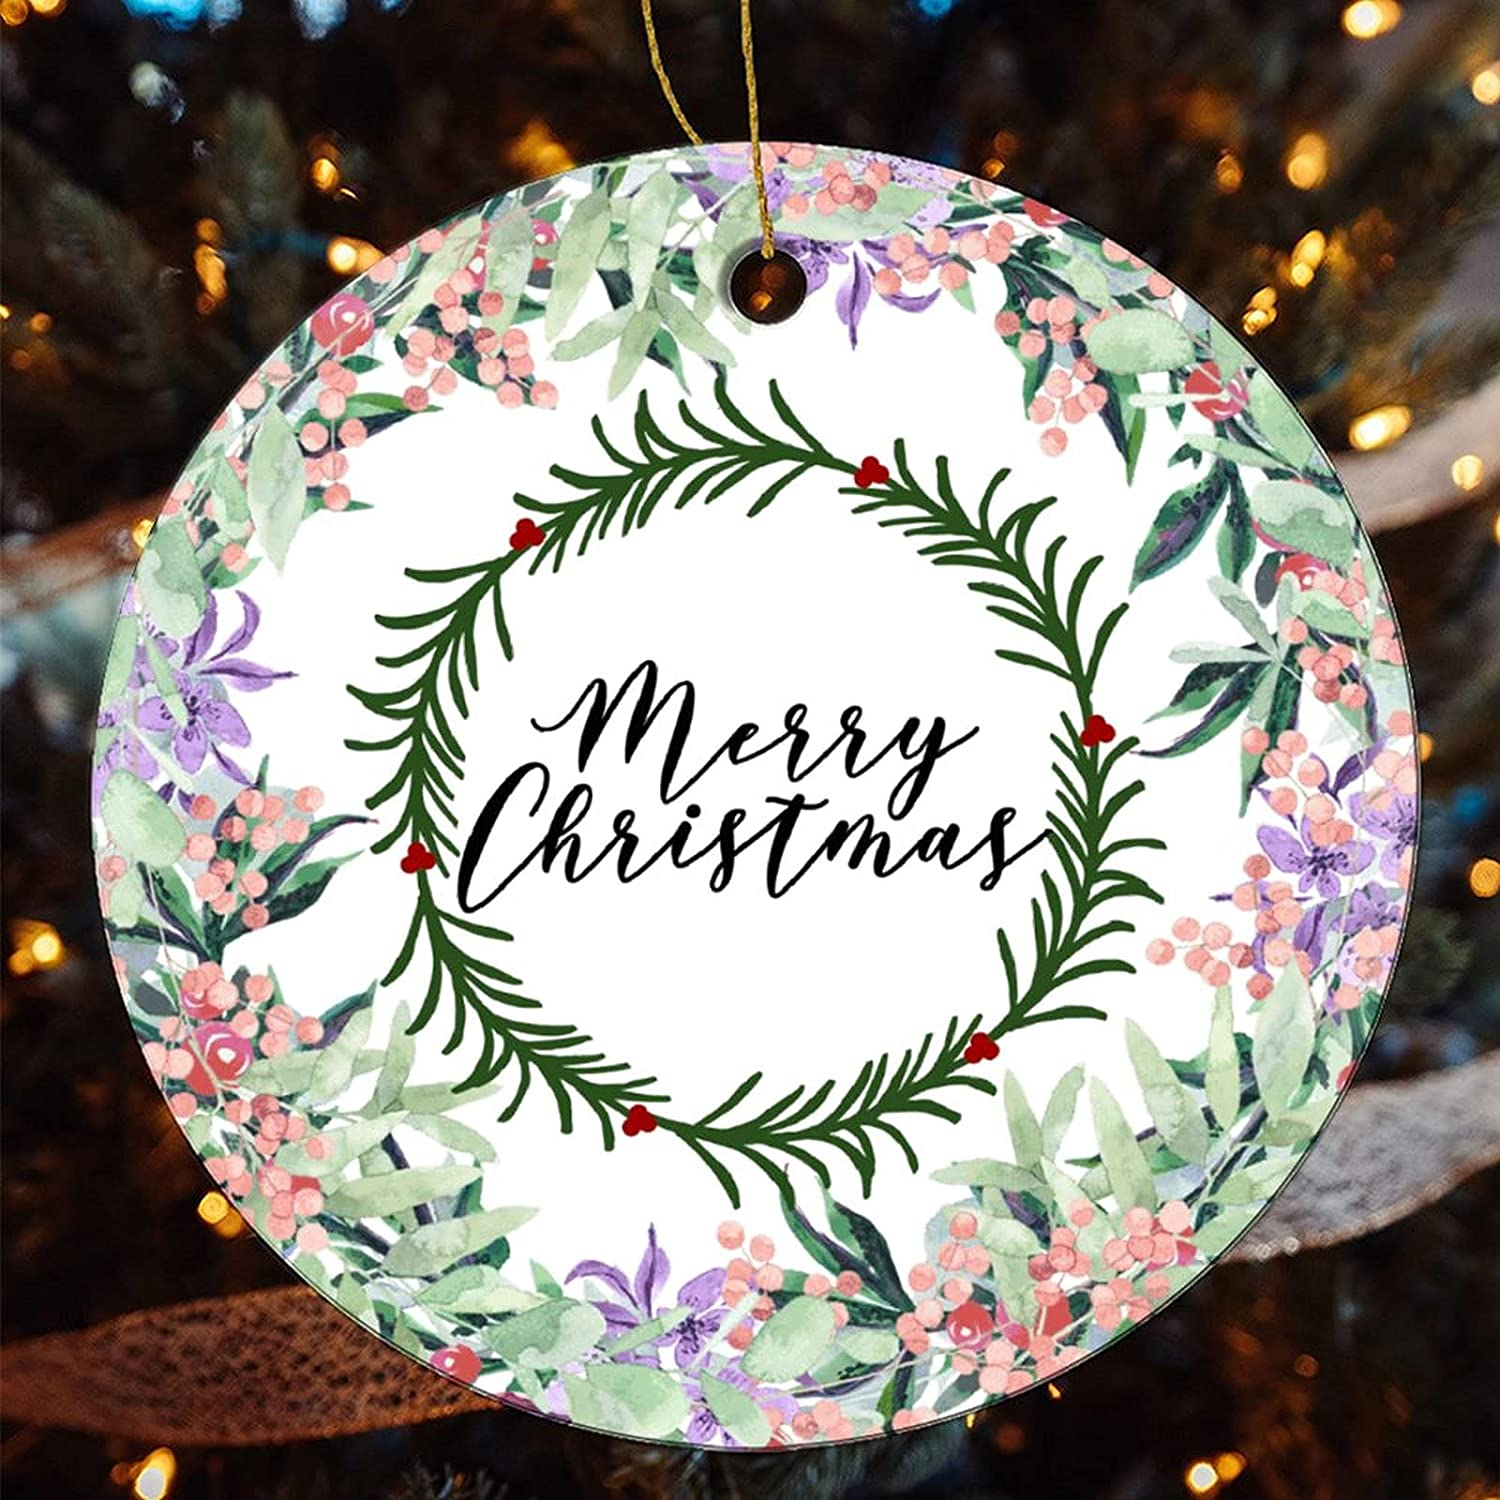 Complete Free Shipping by Unbranded Christmas Ornament Wrea Super-cheap Merry